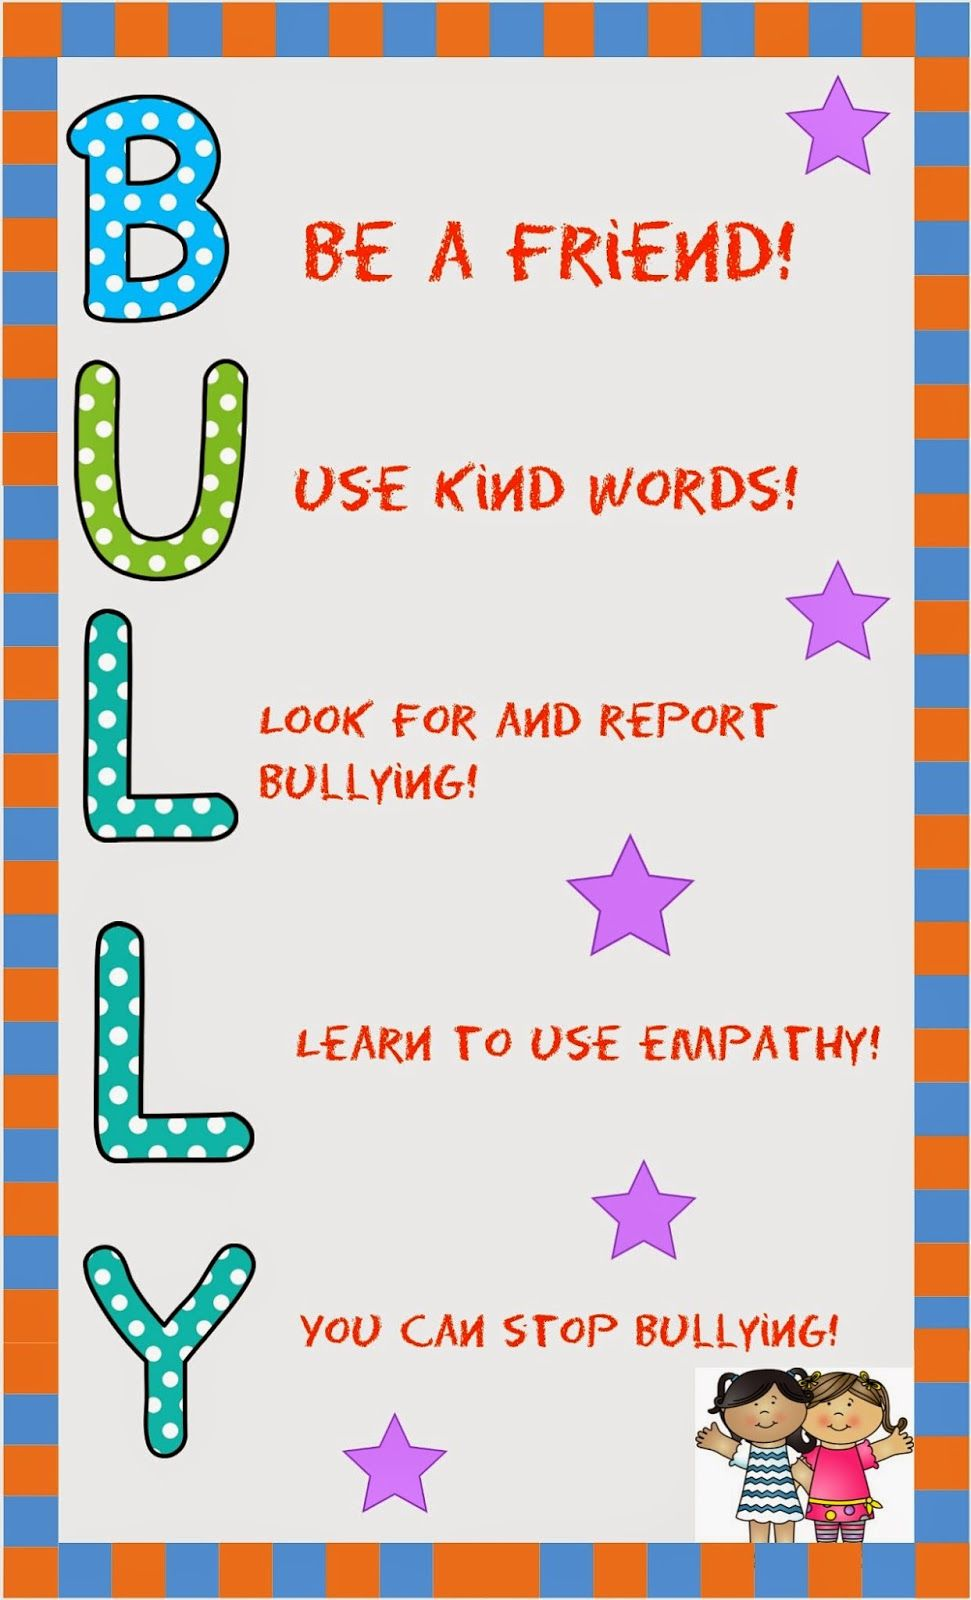 Ideas & Resources for National Bullying Prevention Month